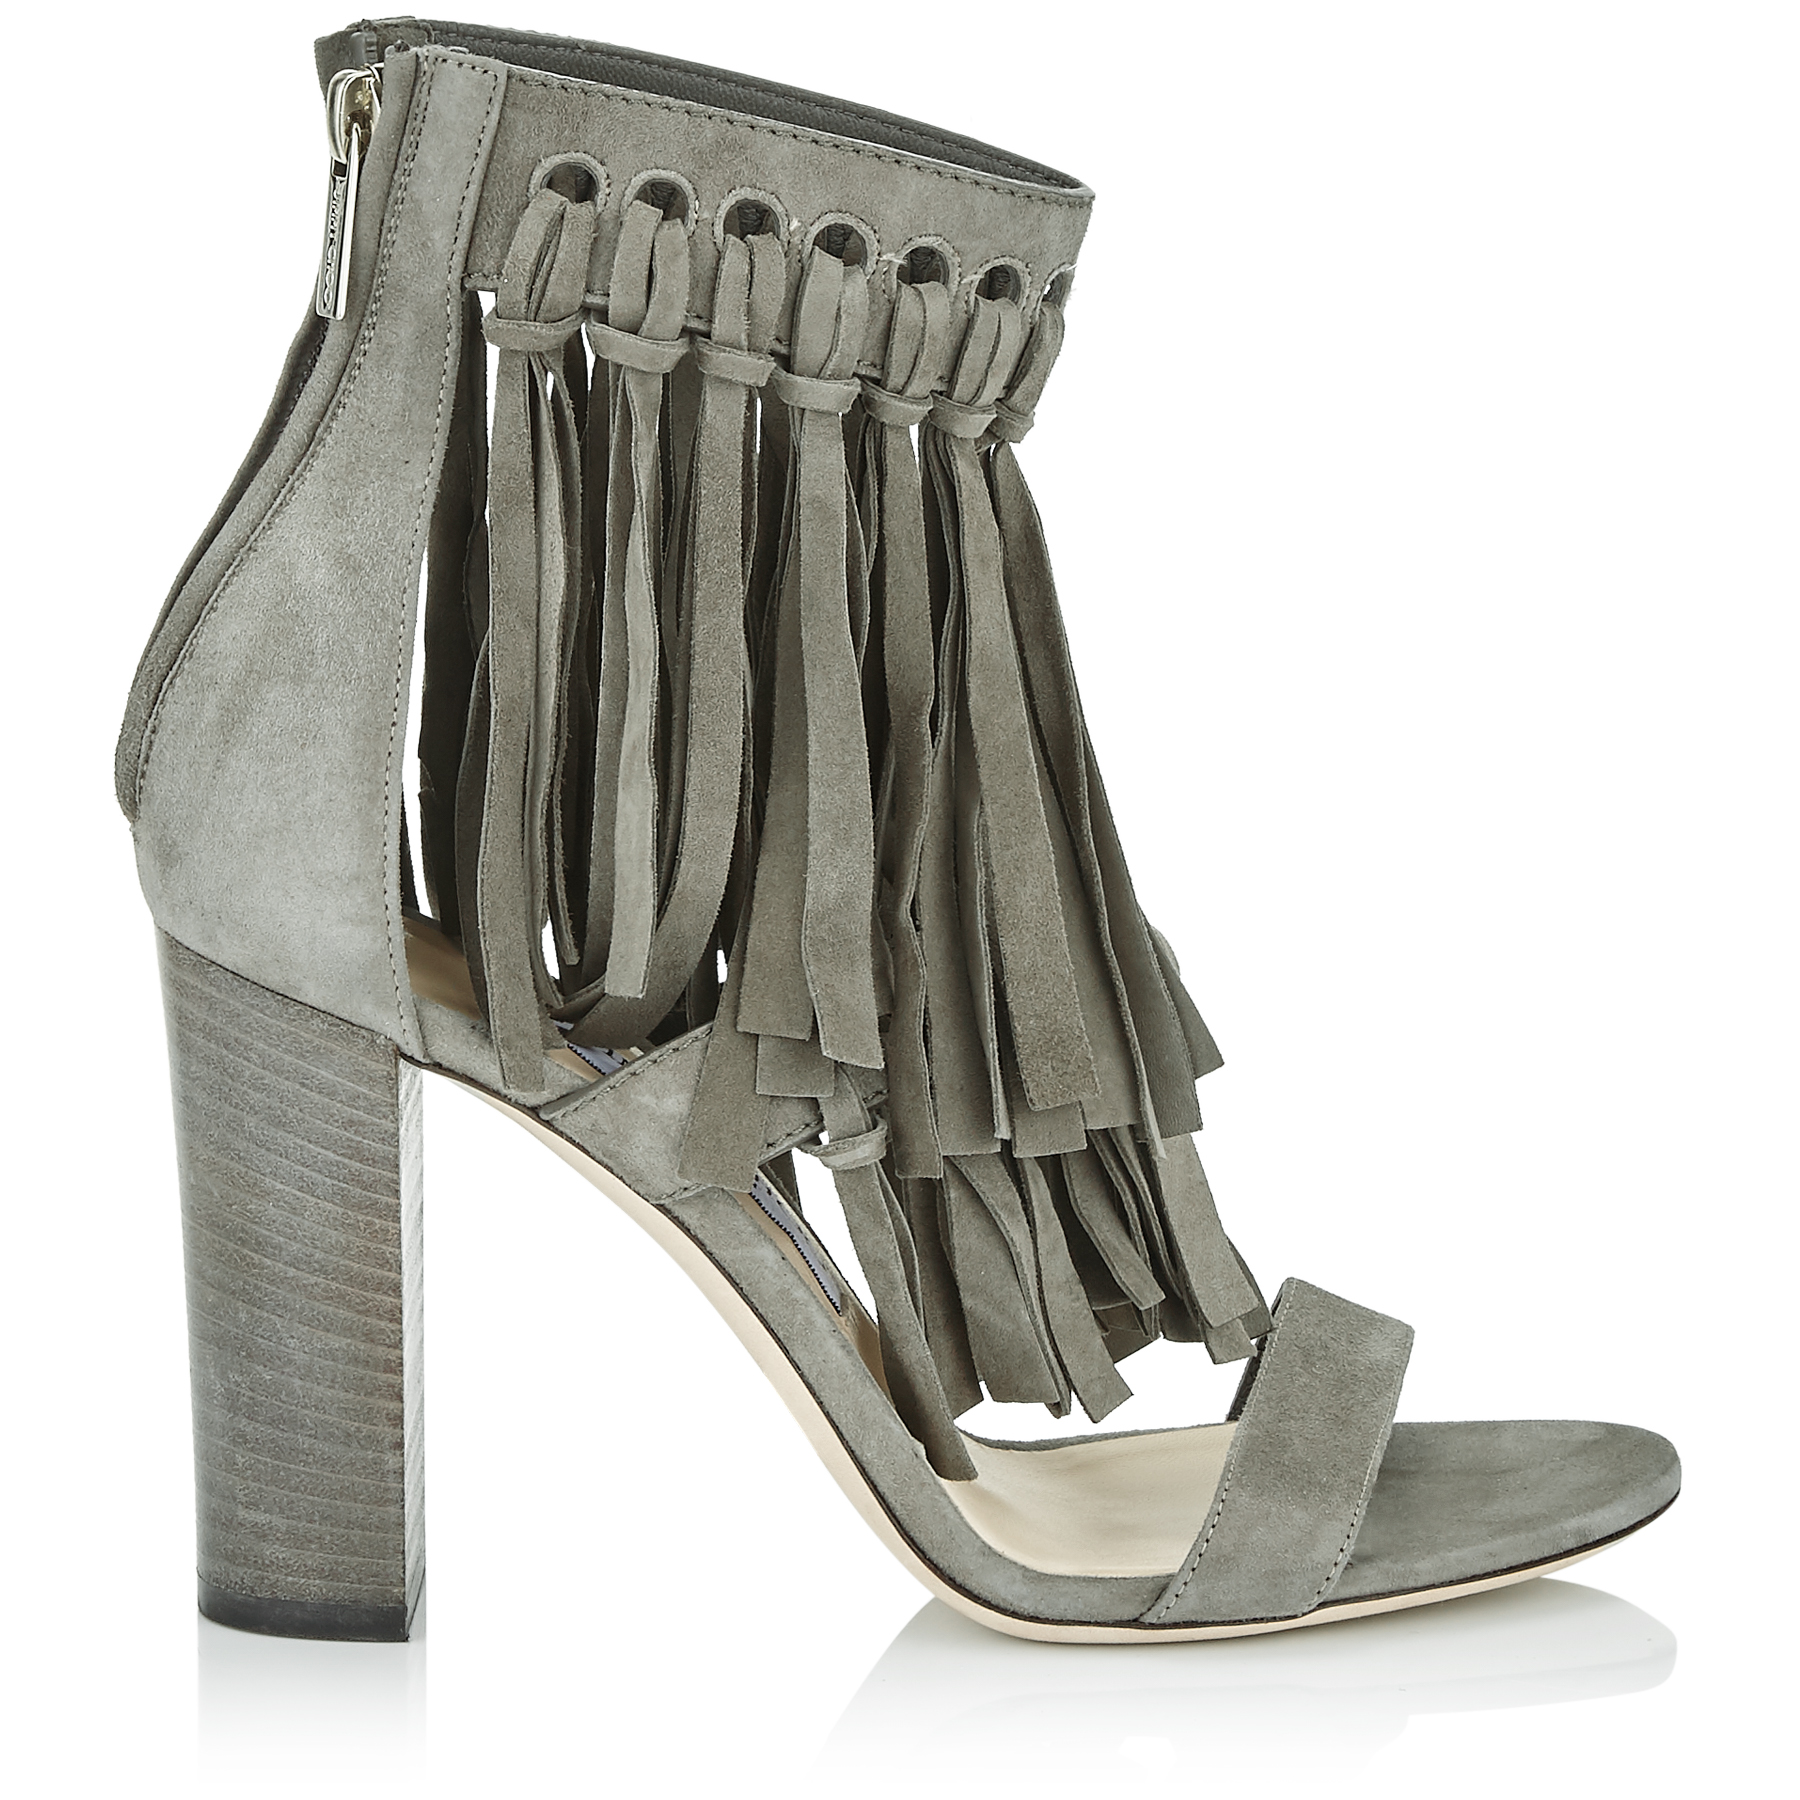 MALIA 95 Mink Suede Sandals with Fringe Detailing by Jimmy Choo